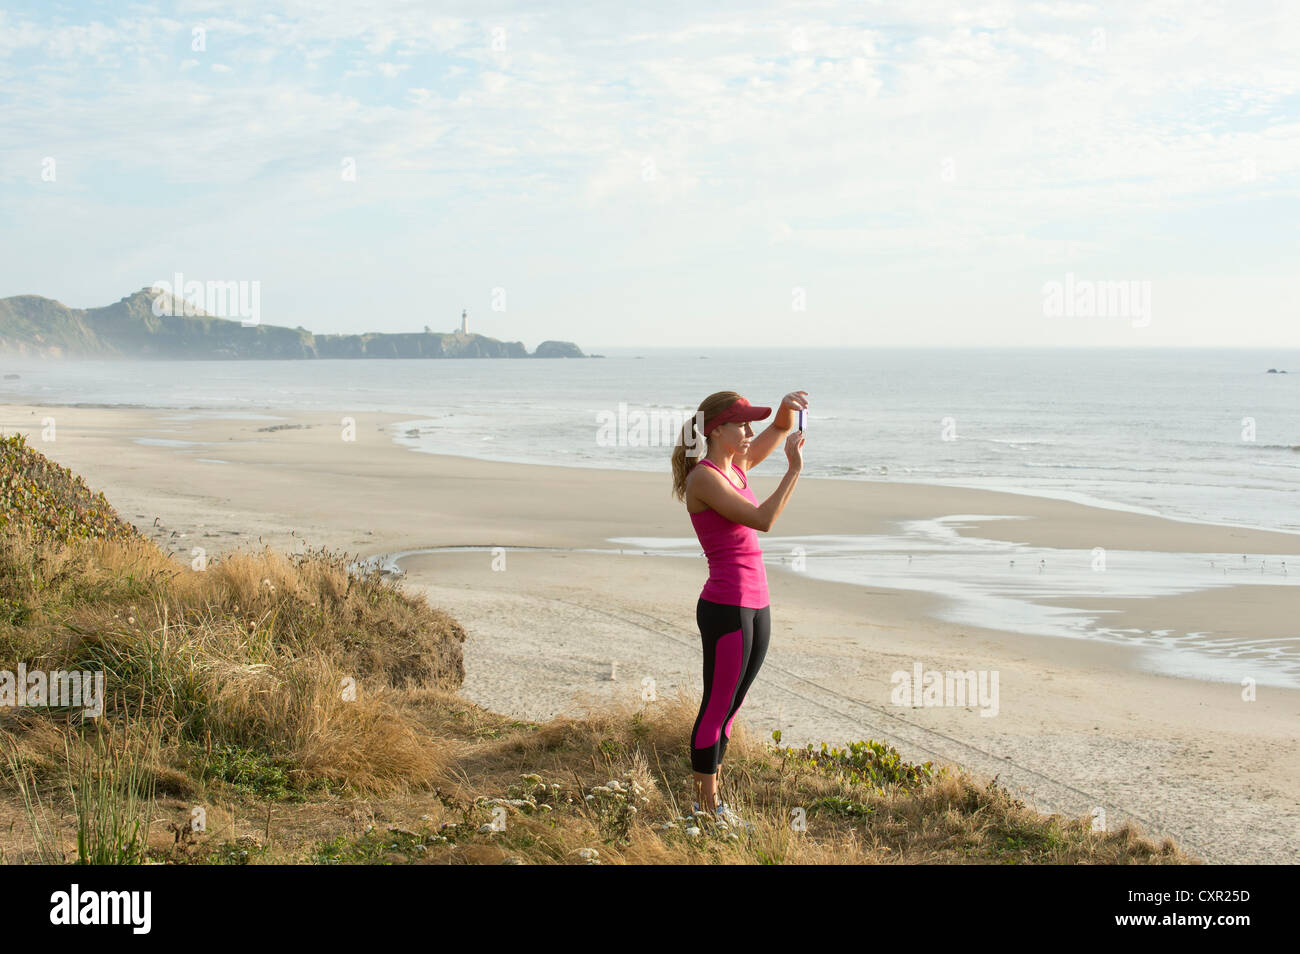 Active young woman taking photograph at the beach - Stock Image